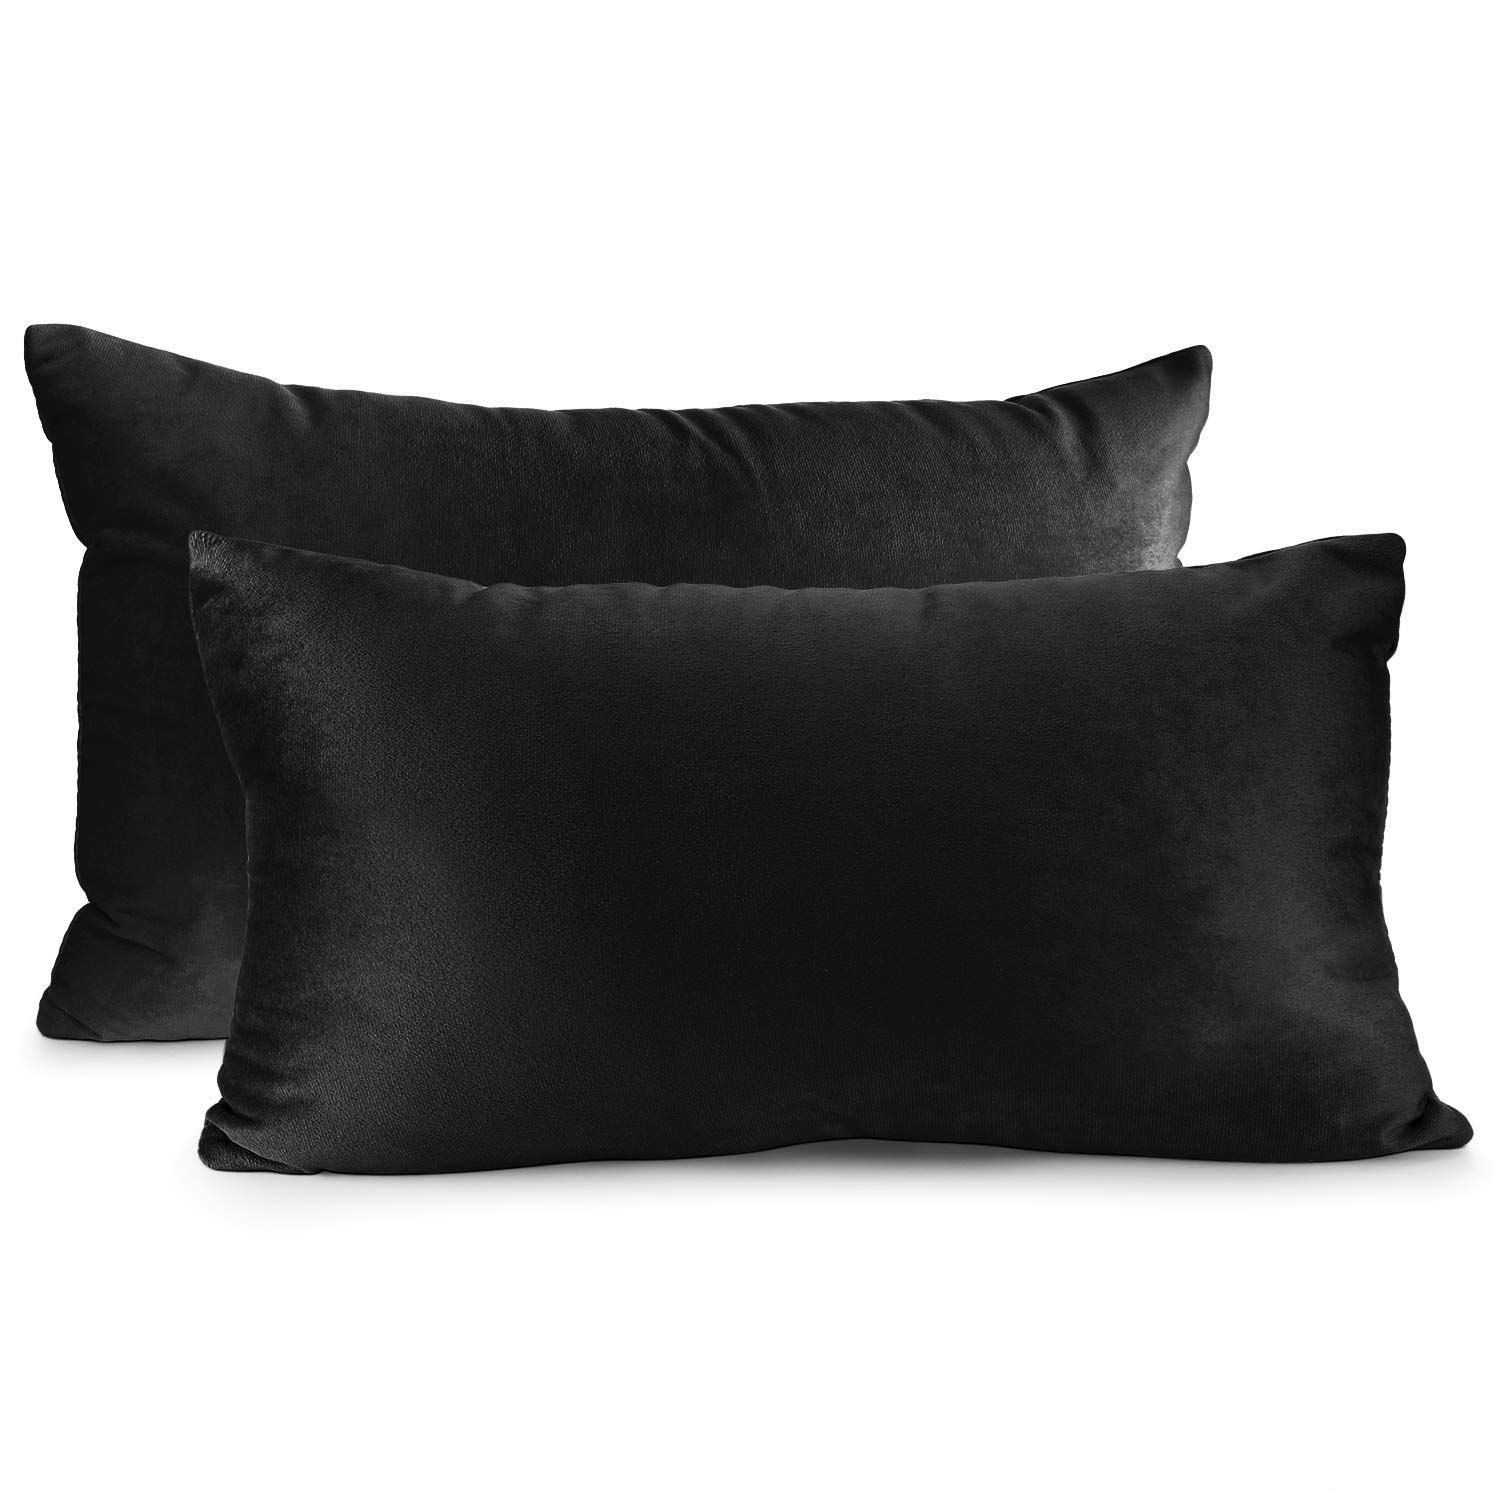 """Nestl Bedding Throw Pillow Cover 12"""" x 20"""" Soft Square Decorative Throw Pillow Covers Cozy Velvet Cushion Case for Sofa Couch Bedroom, Set of 2, Black"""